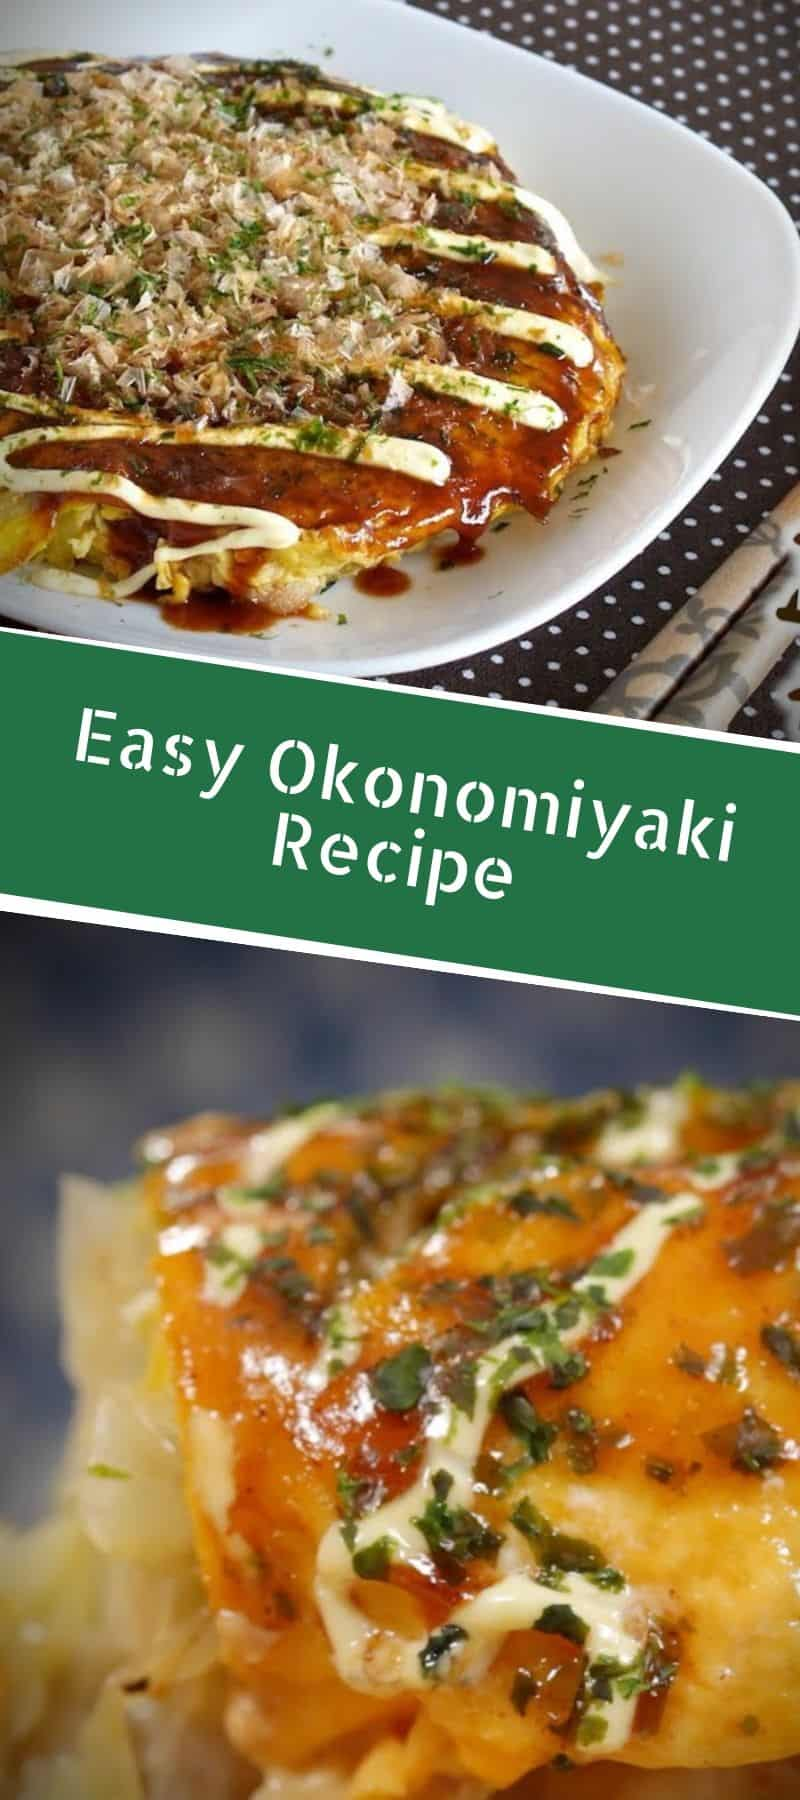 Easy Okonomiyaki Recipe 3